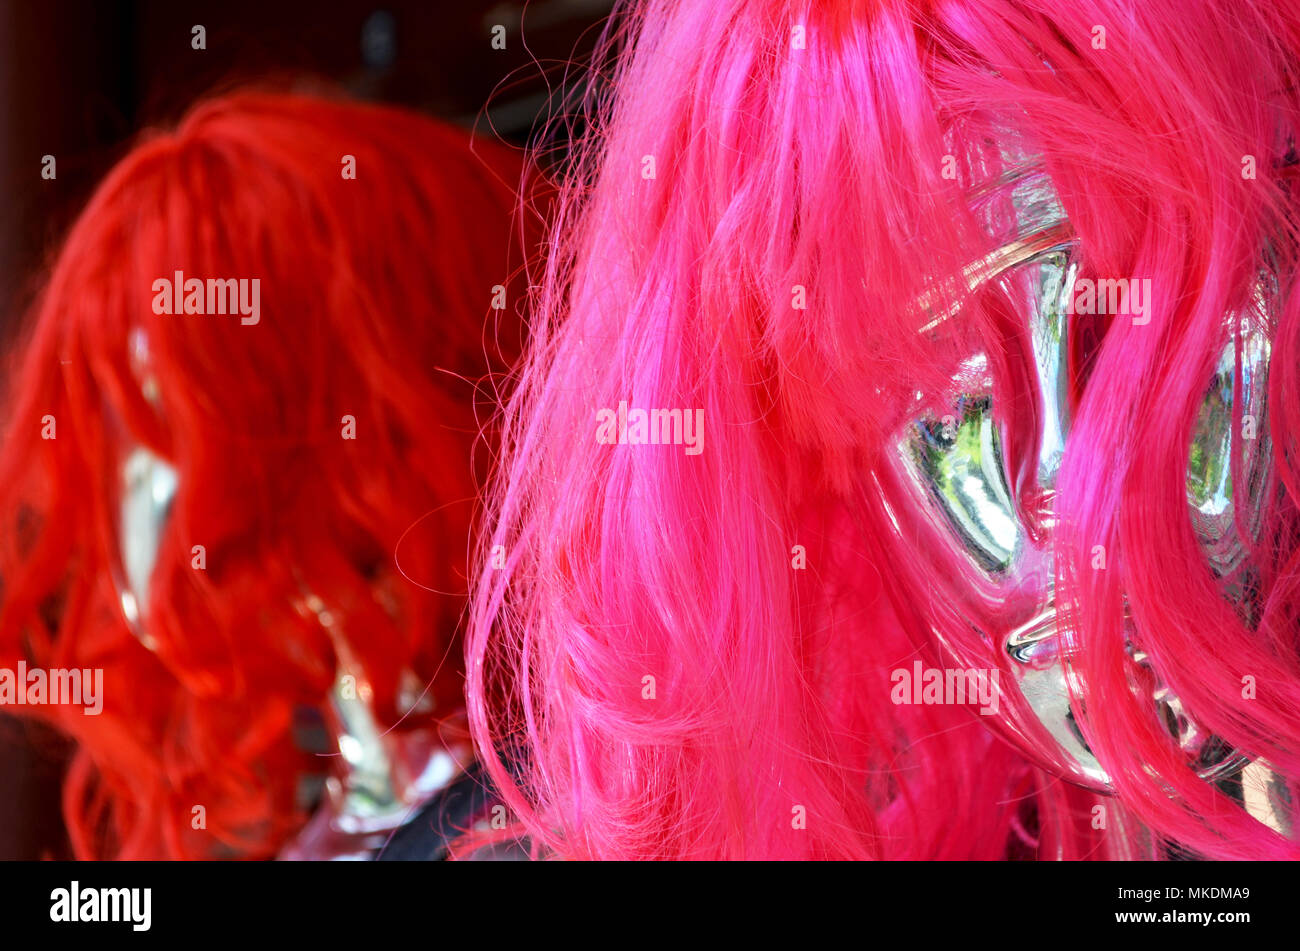 Wigs on a mannequin head - Stock Image